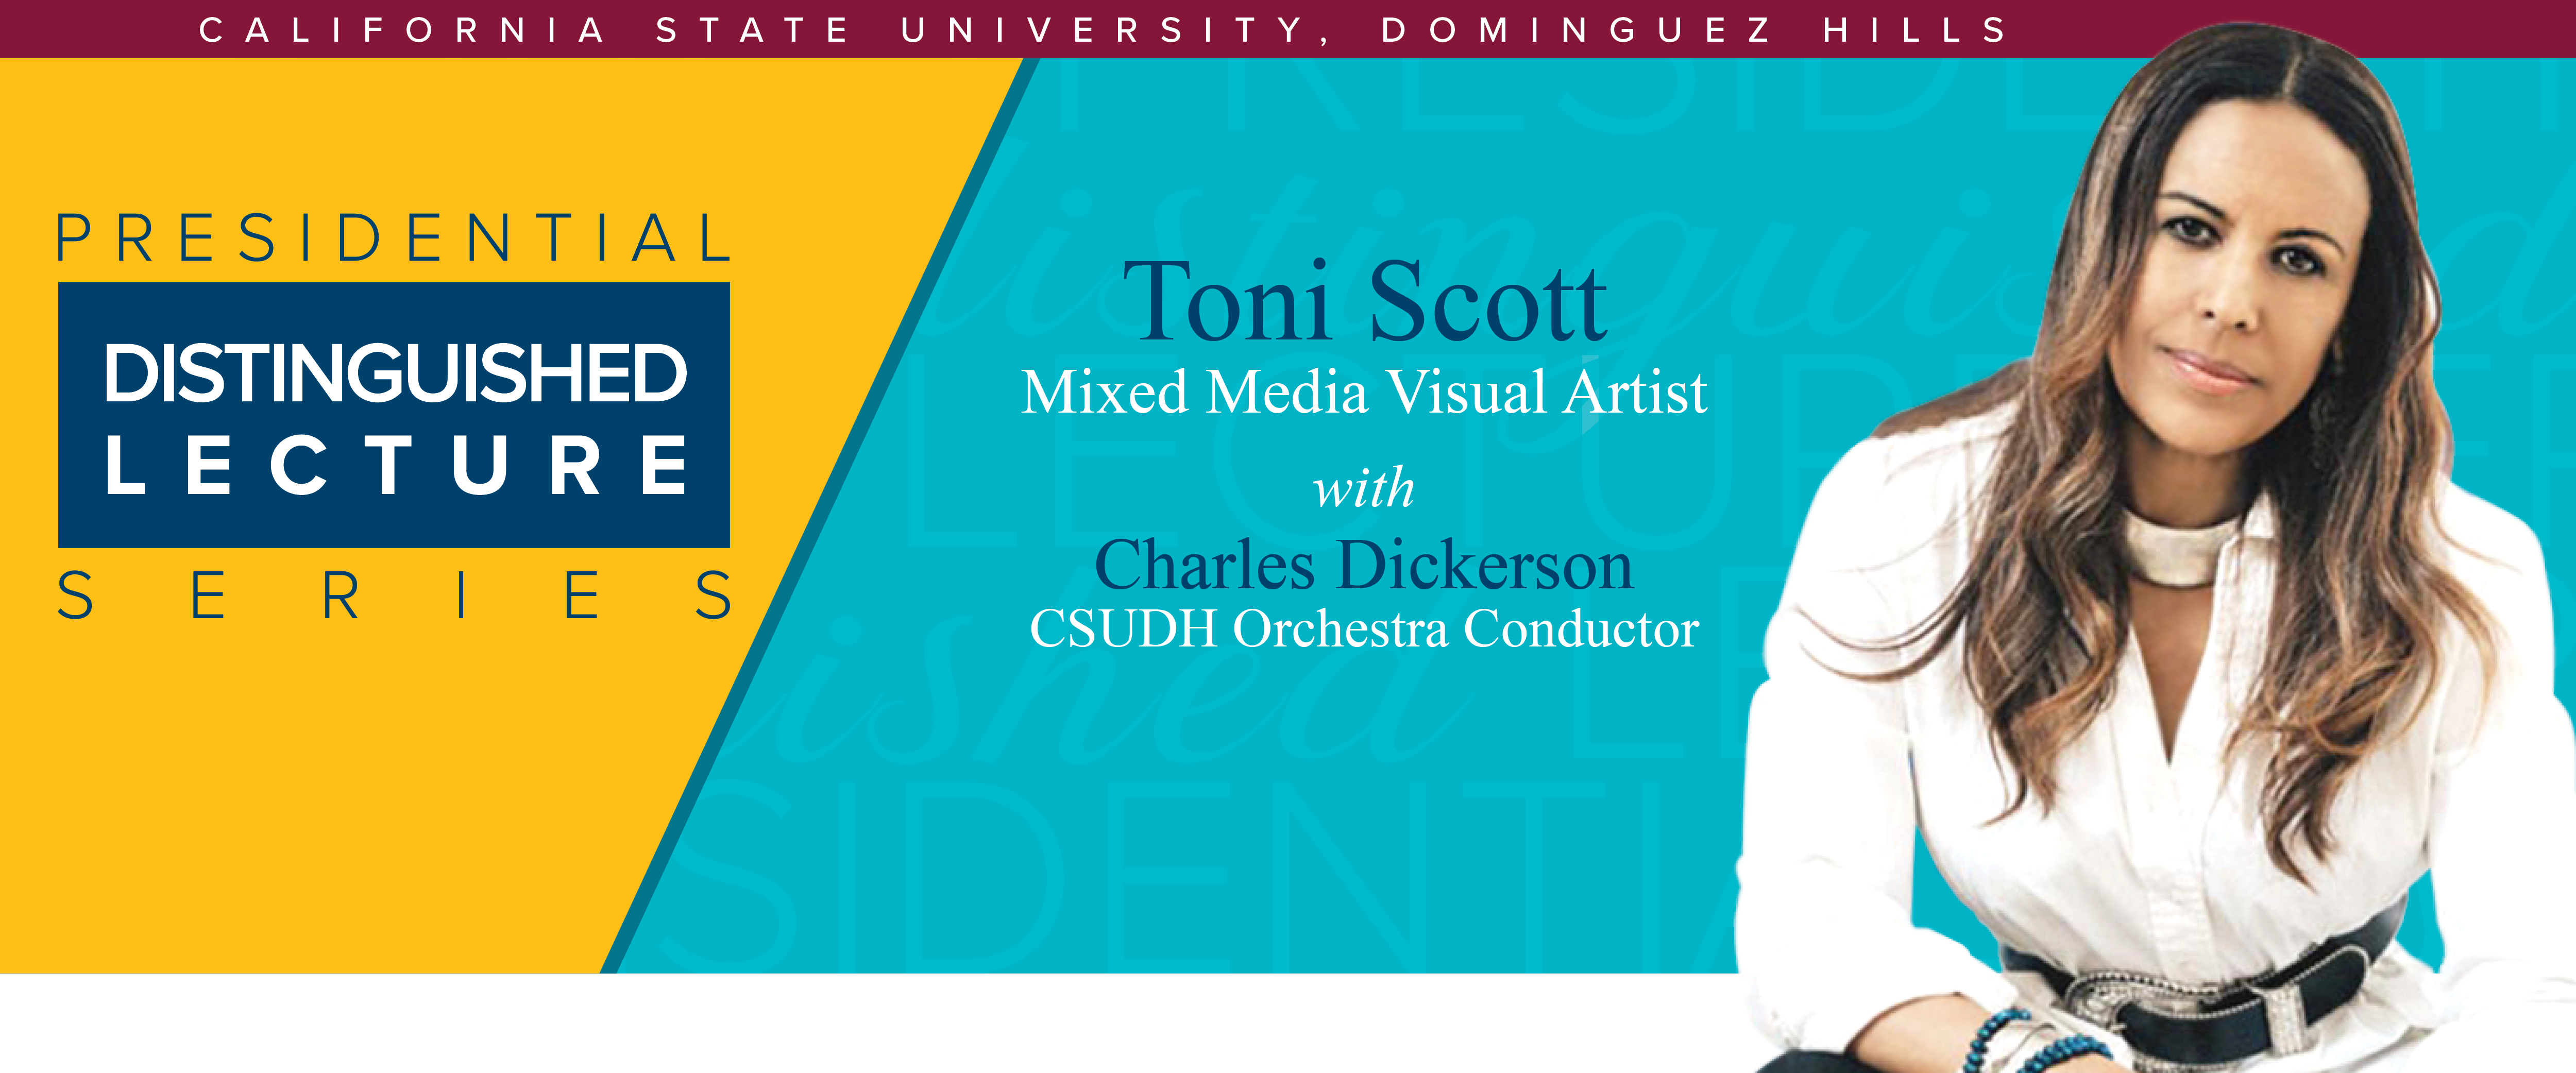 Toni Scott, Mixed Media Visual Artist with Charles Dickerson CSUDH Orchestra Conductor